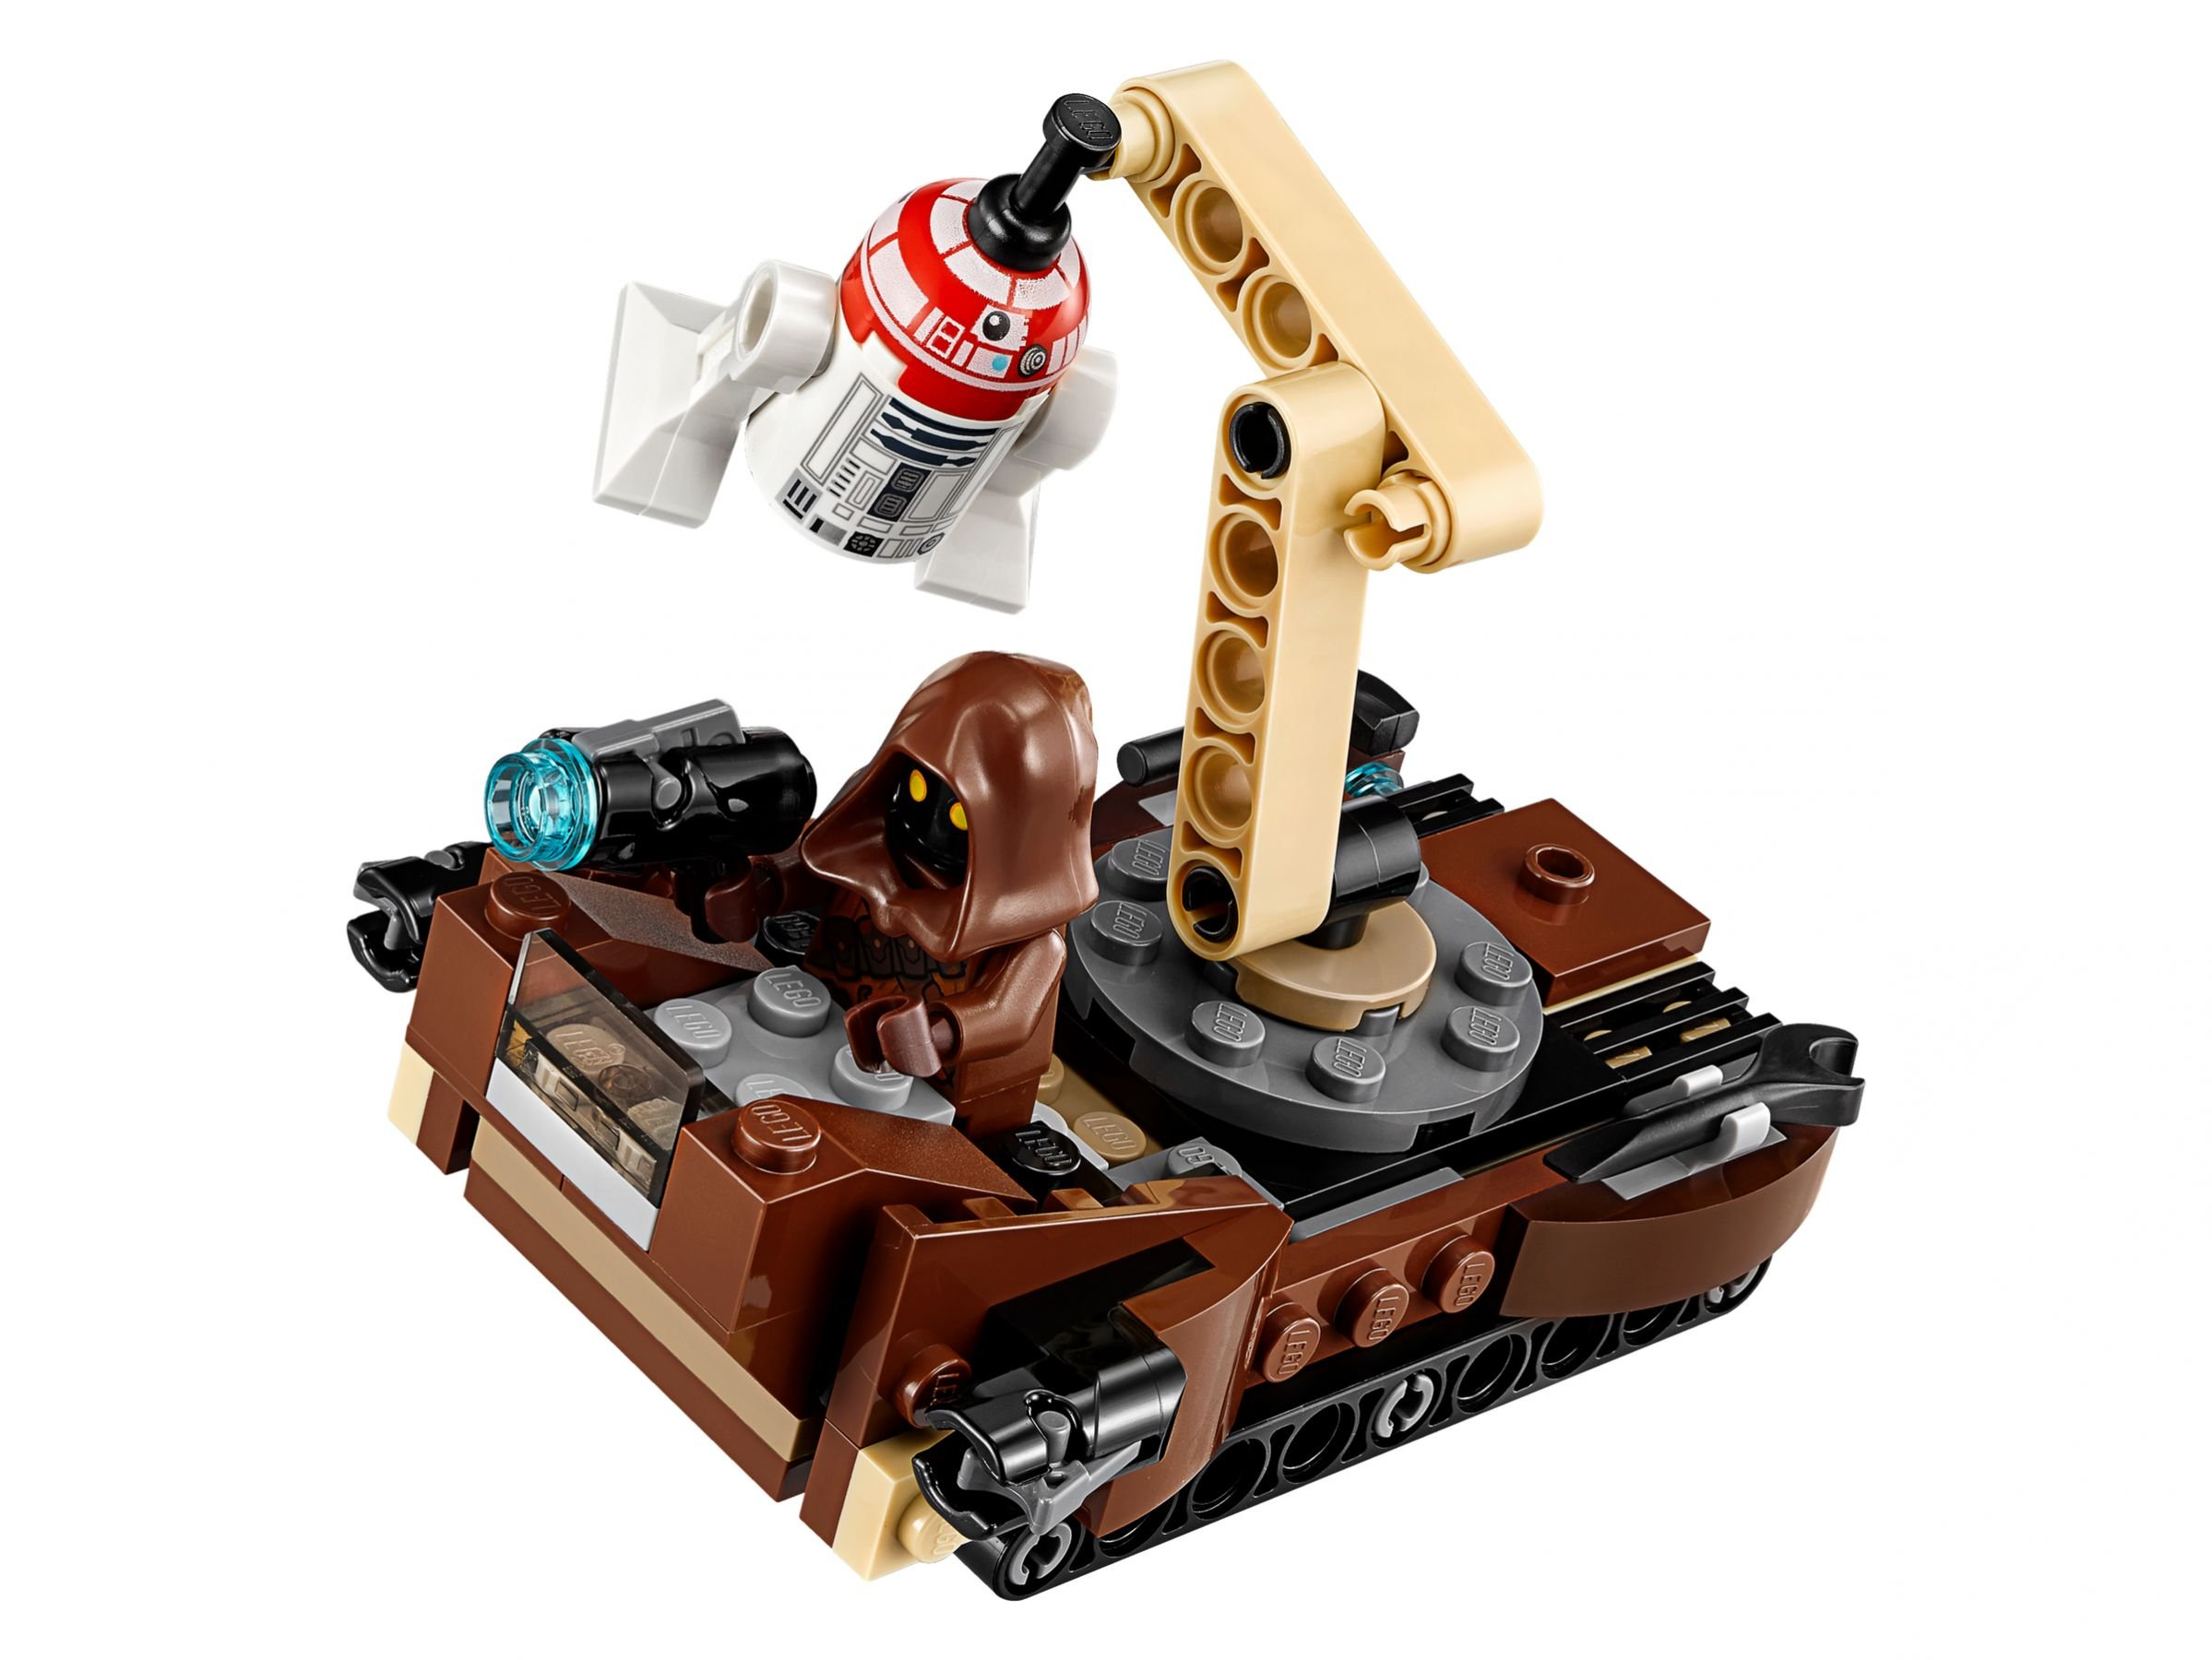 lego 75198 tatooine battle pack star wars 2018 ab 10 41 39 gespart brickmerge. Black Bedroom Furniture Sets. Home Design Ideas